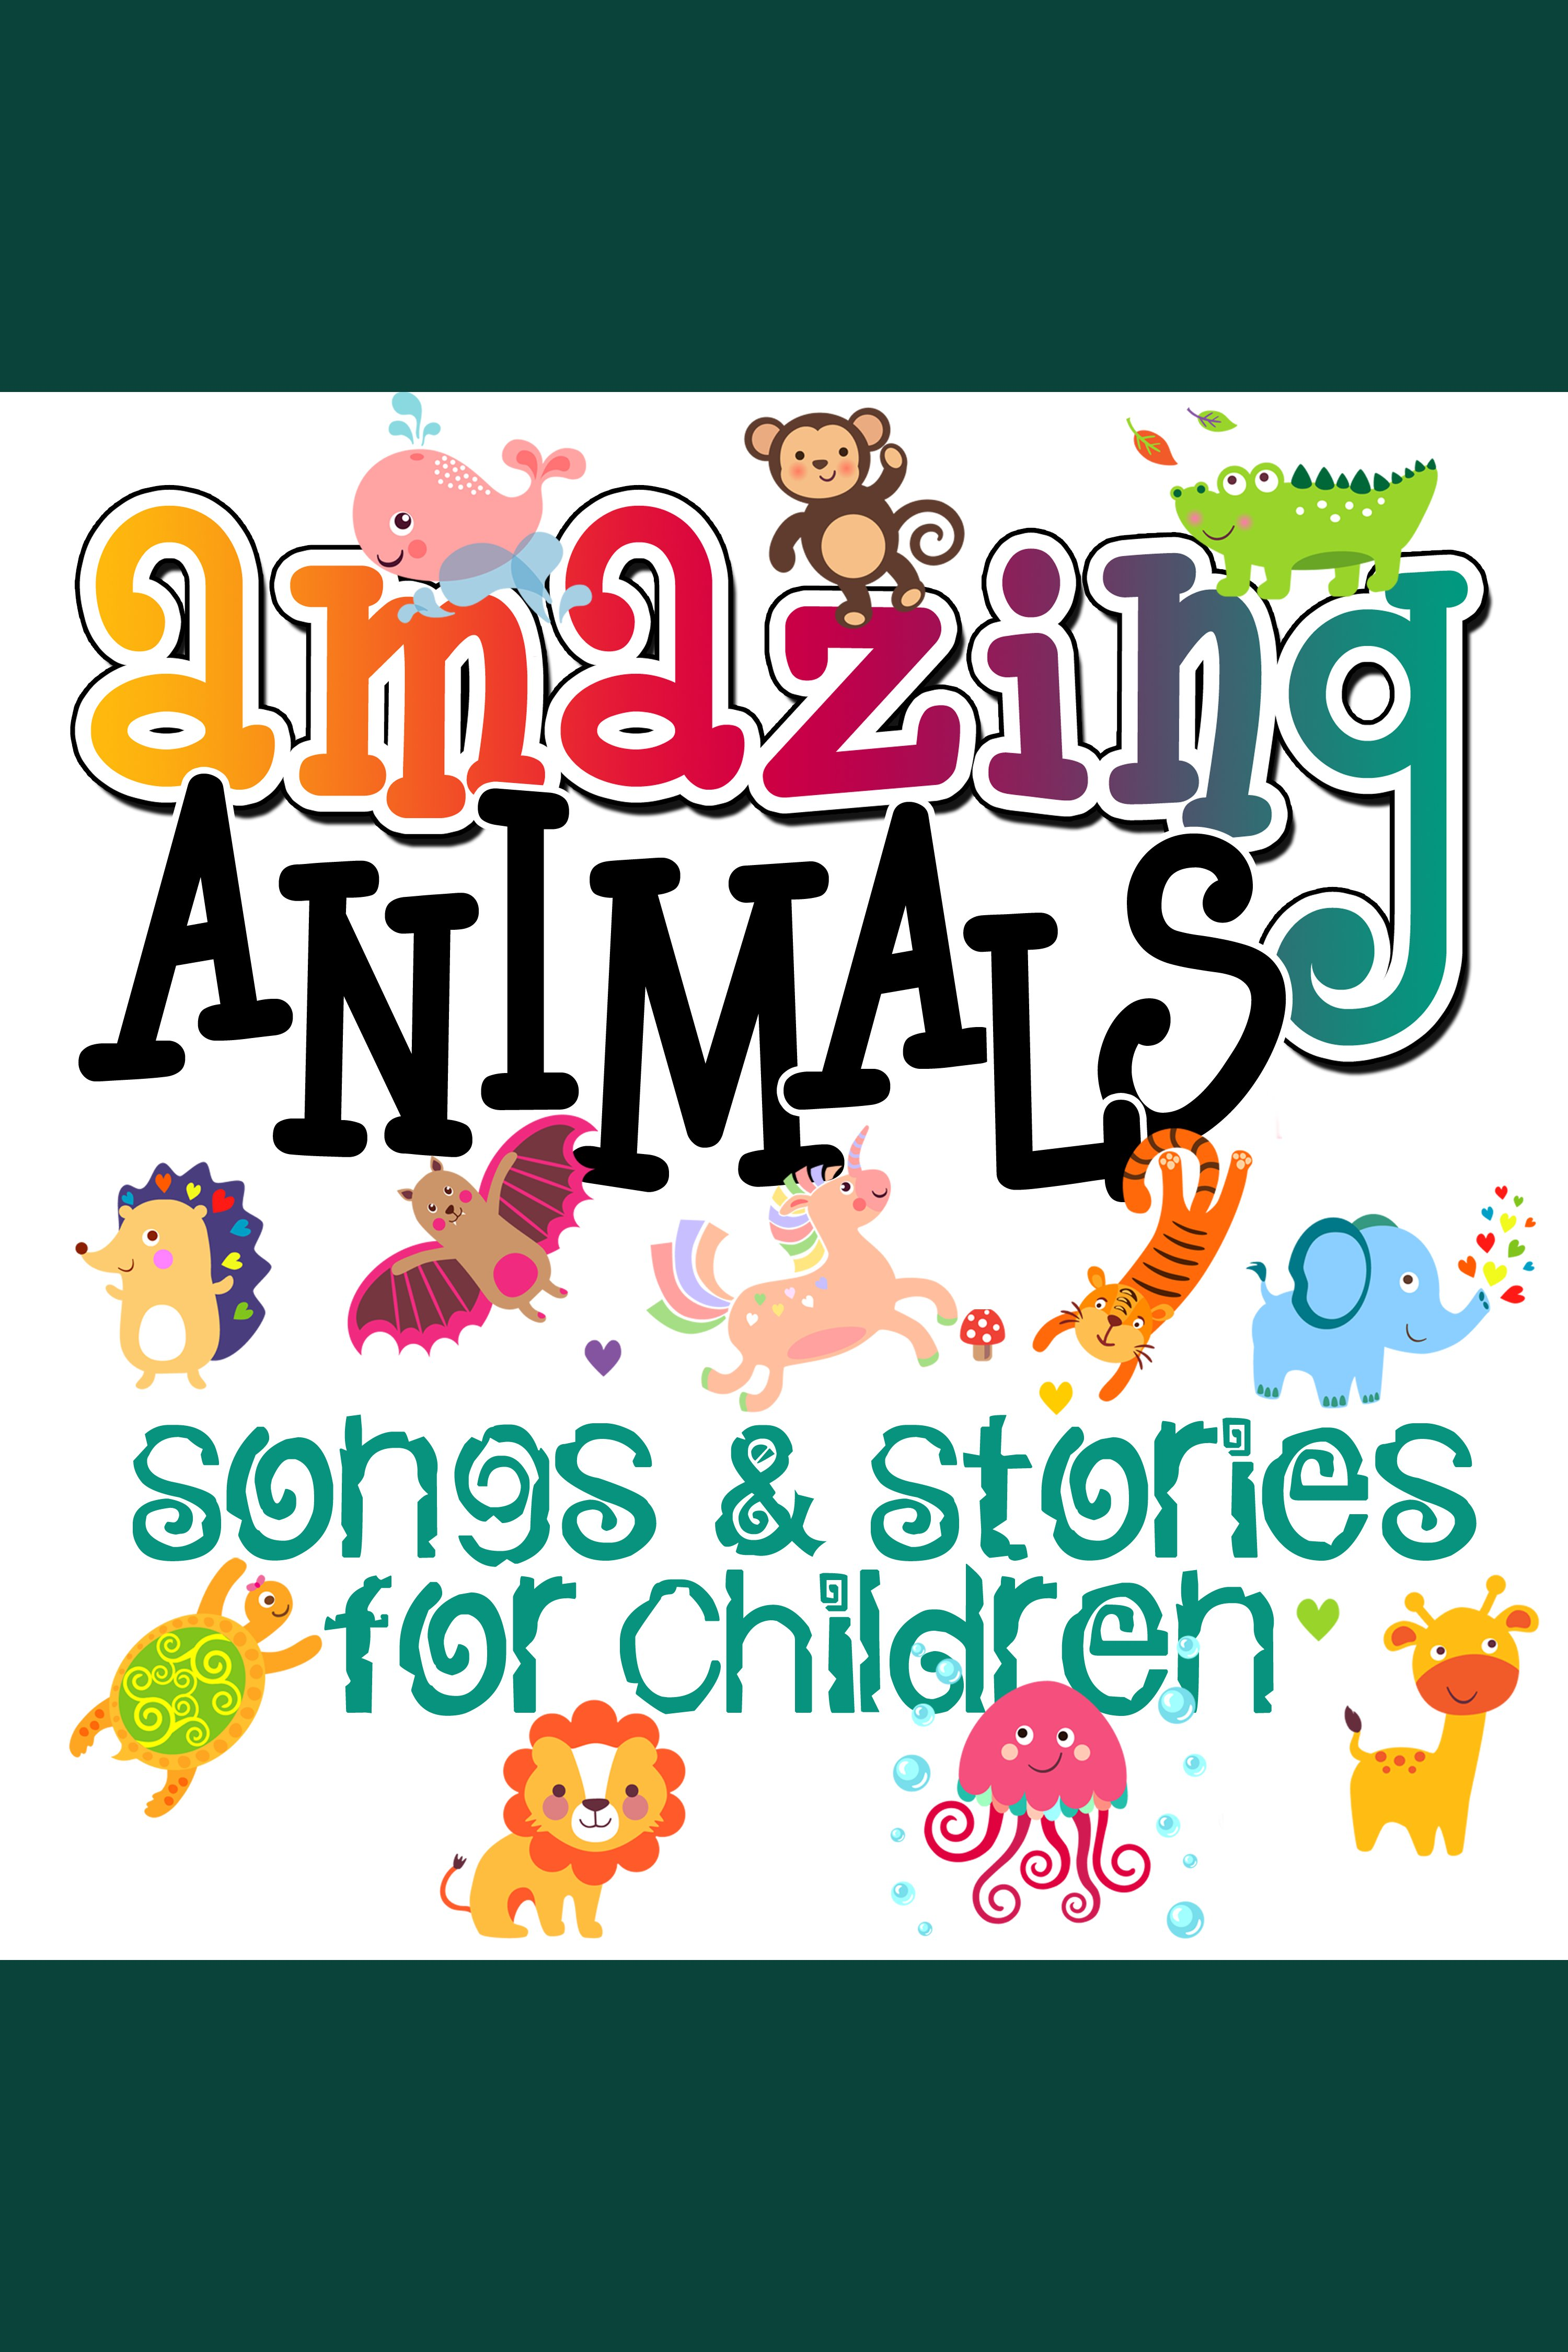 Amazing Animals! Songs & Stories for Children cover image